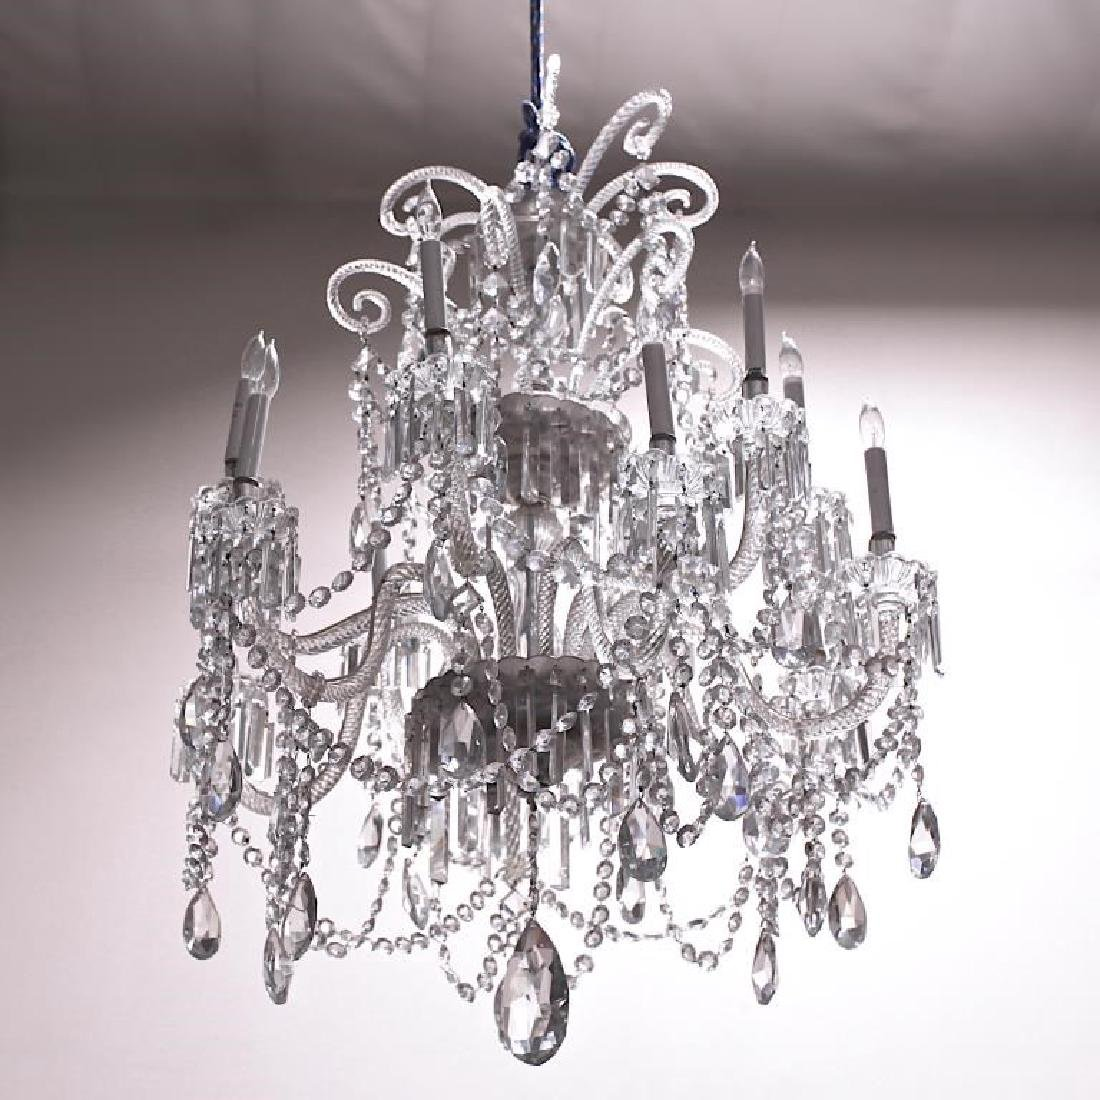 ELEGANT CHANDELIER WITH CRYSTAL DROPS